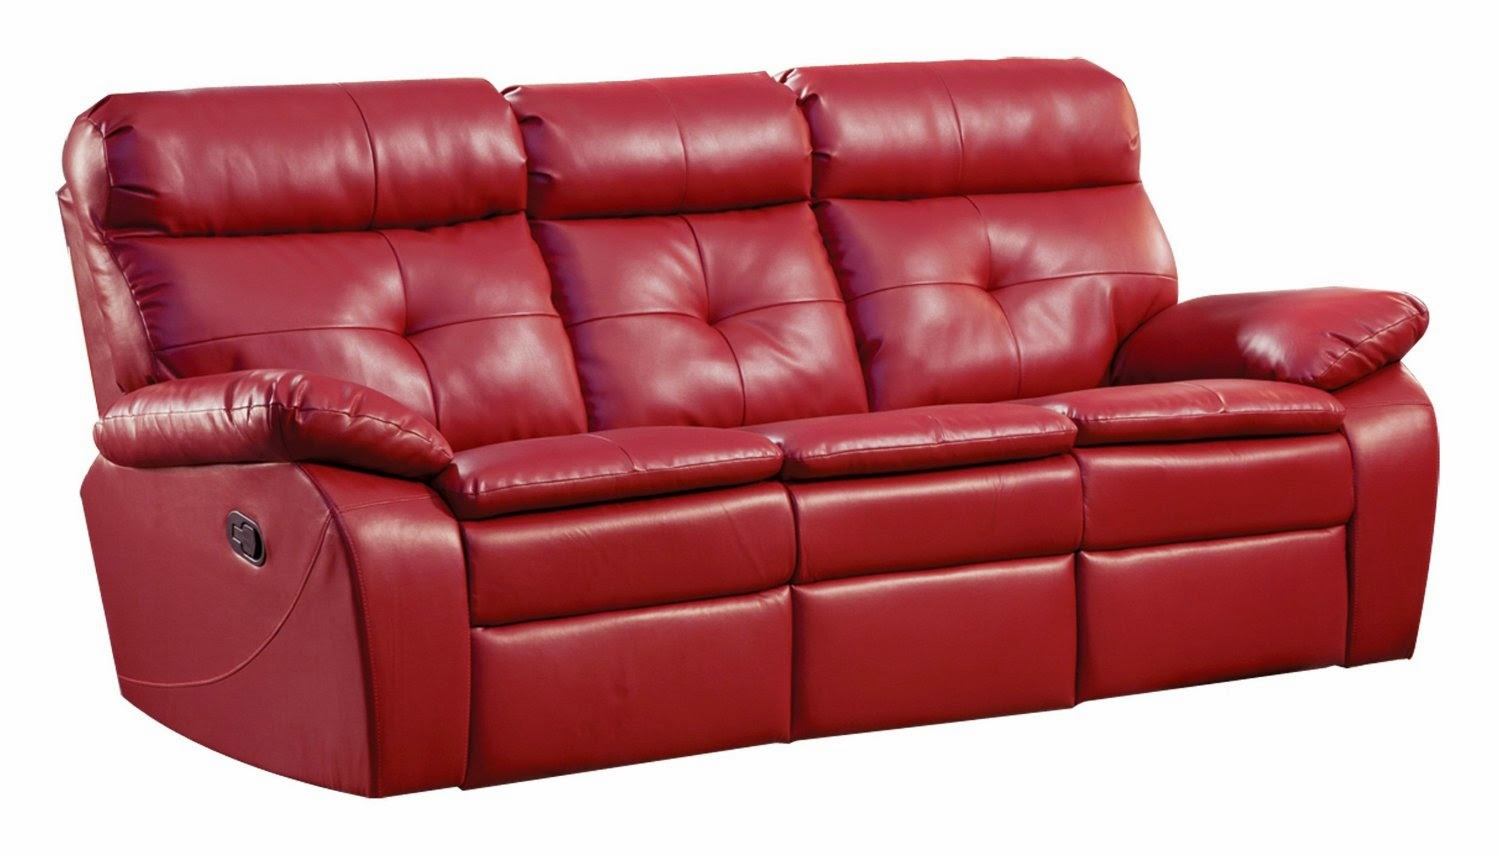 Reclining Loveseat Sale Red Reclining Sofa And Loveseat